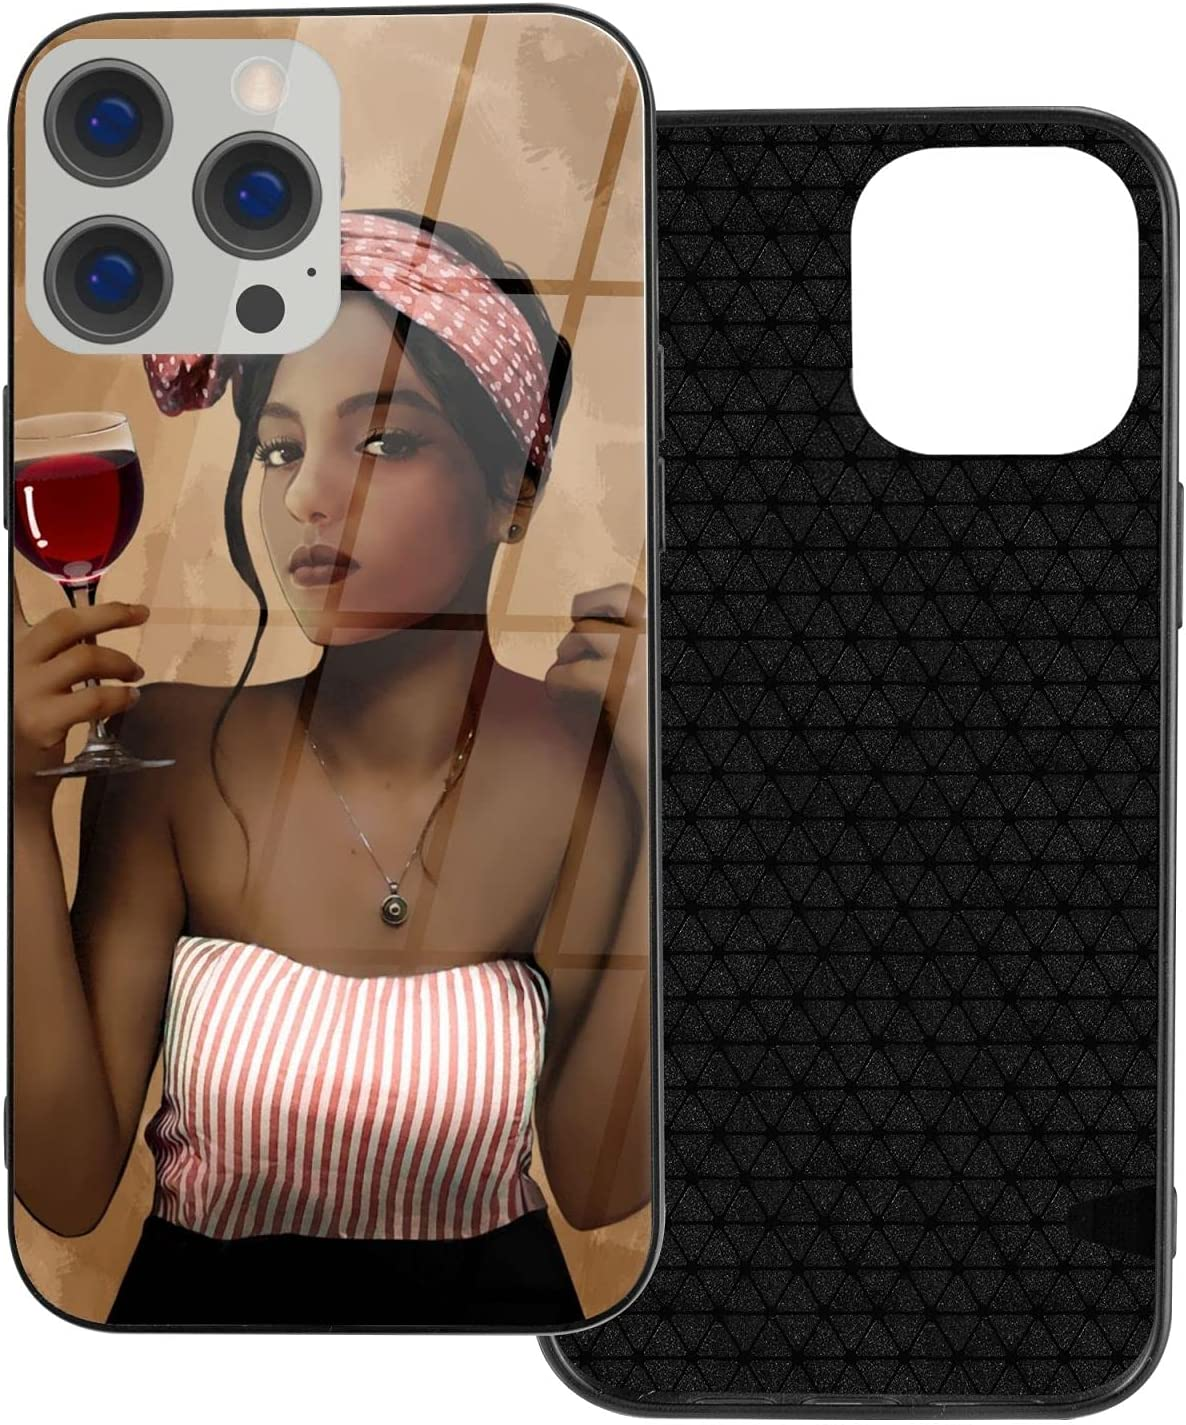 EZYES Case for iPhone 6/6S American African Woman Phone Case Afro Girl Design Anti-Drop Shock Phone Cover Slim Fit Full Protection TPU Tempared Glass Phone Case